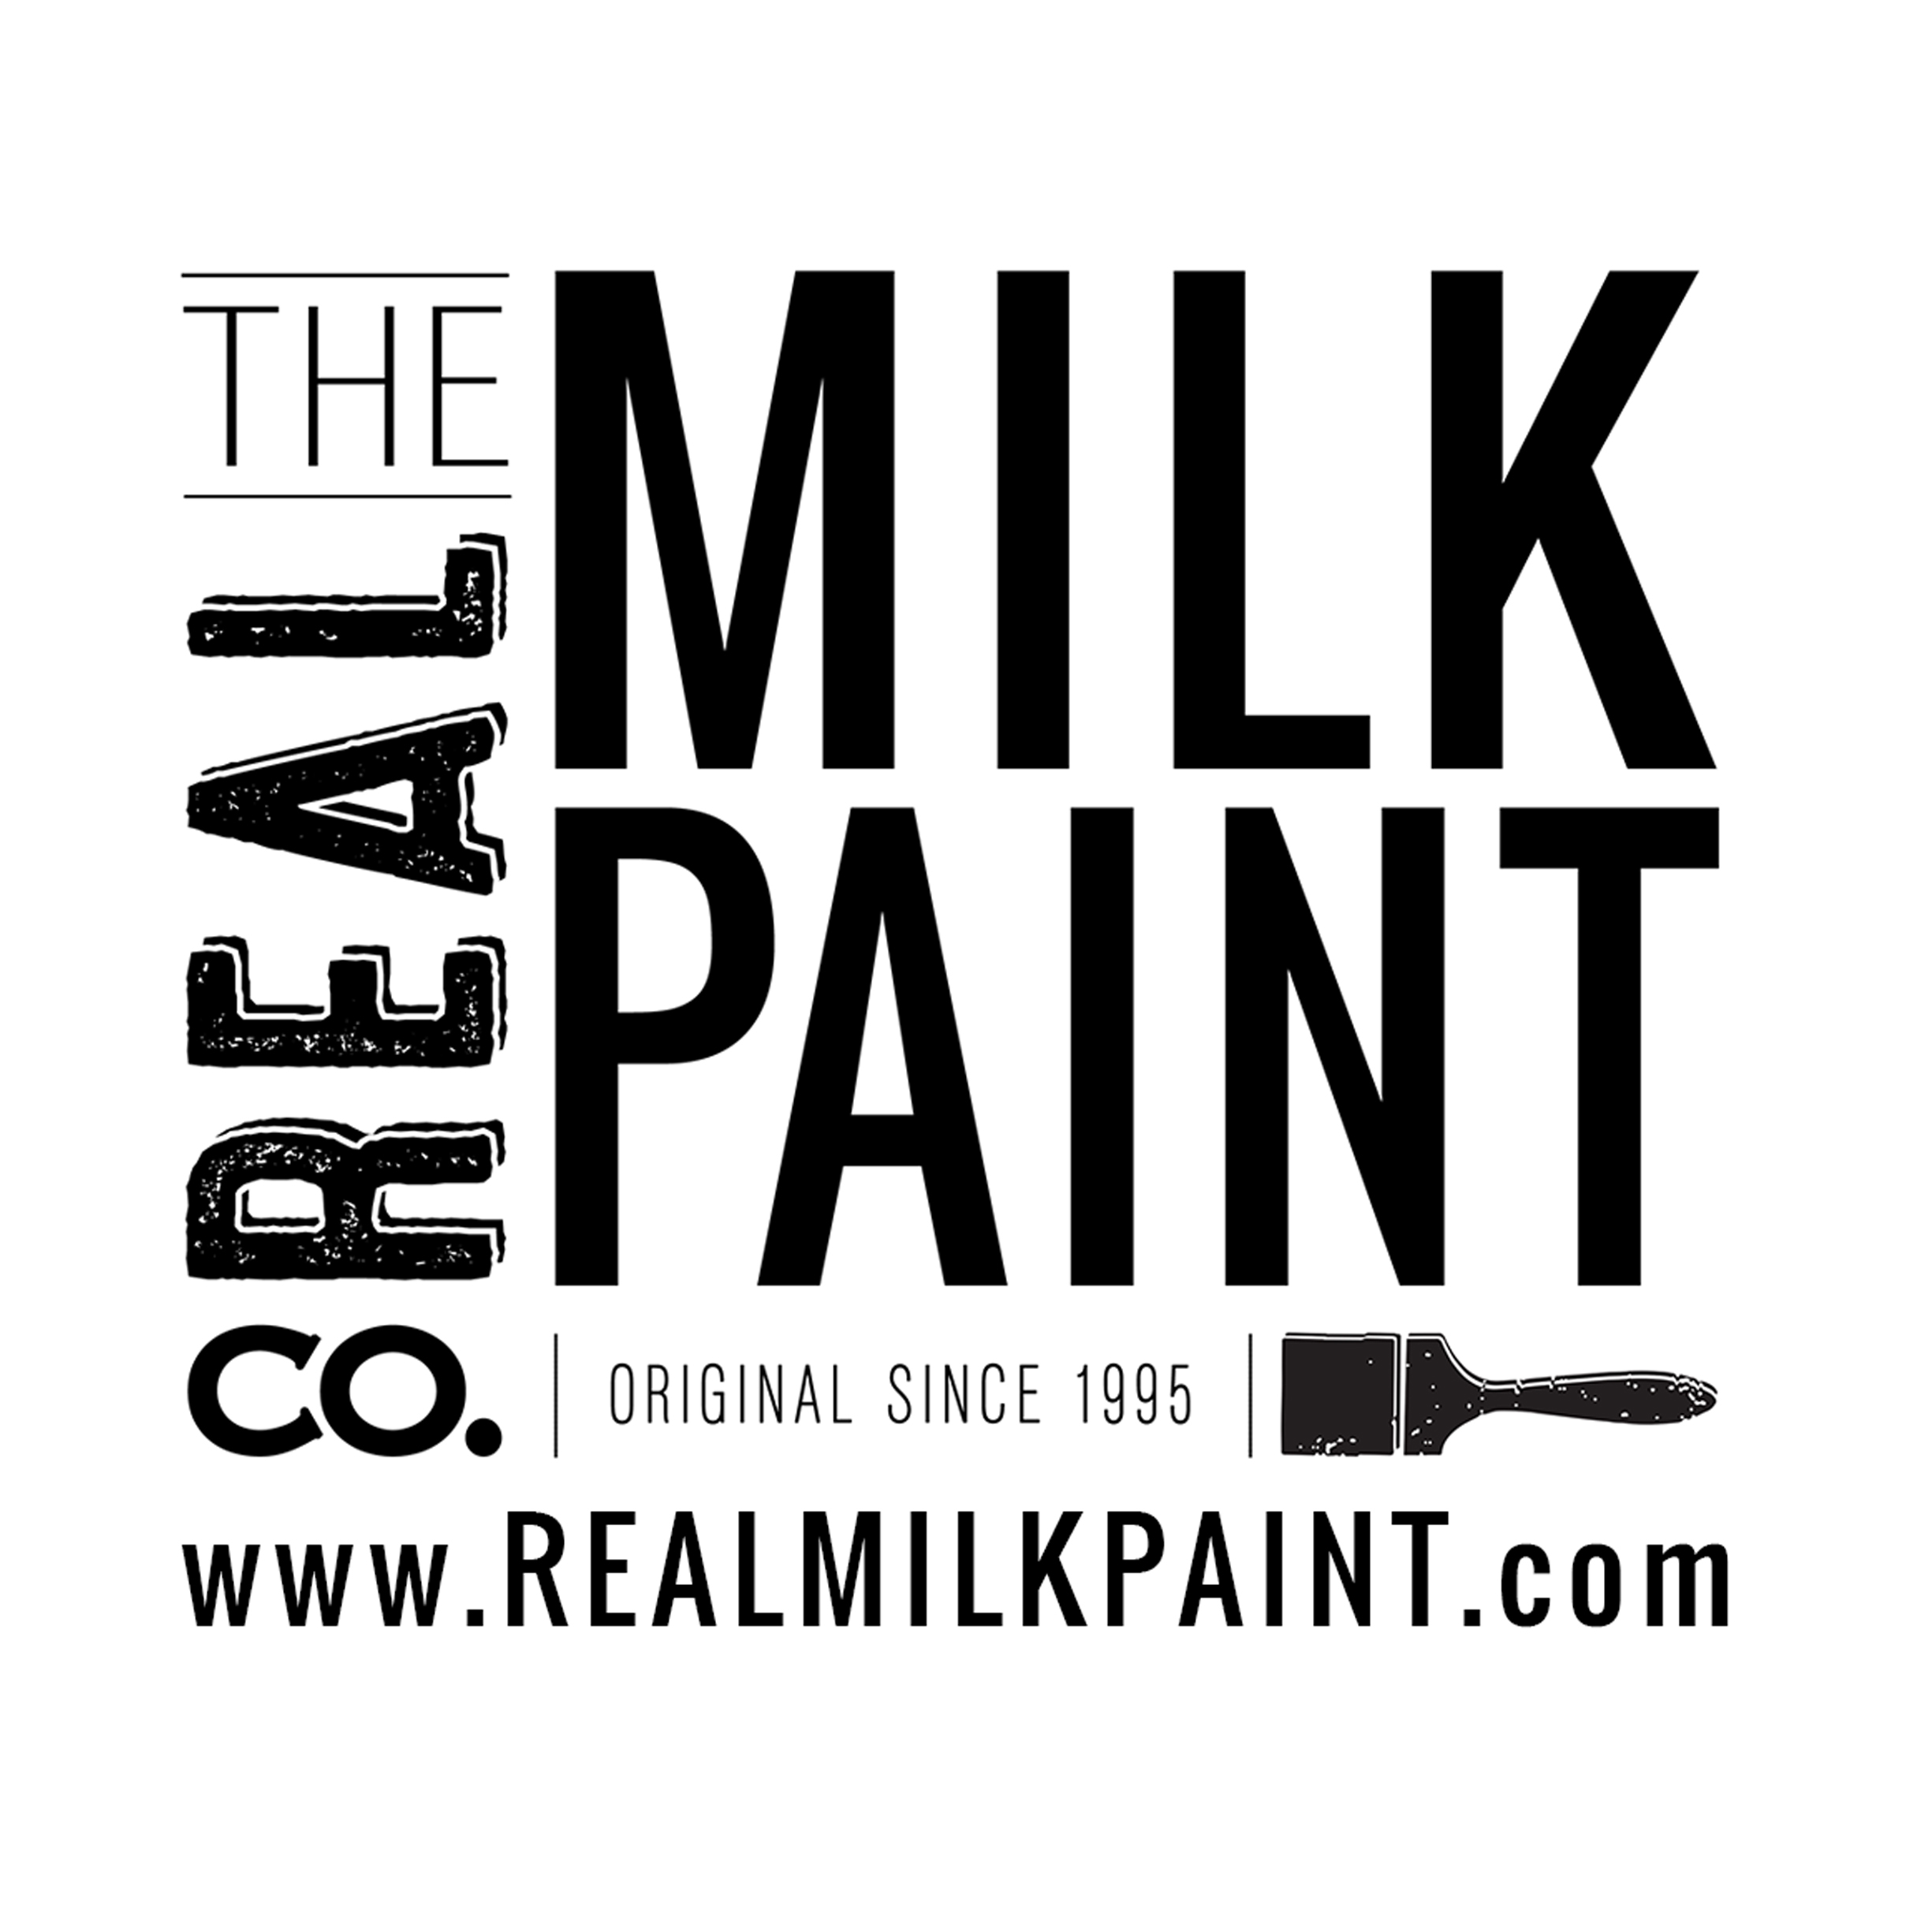 Real Milk Paint Co